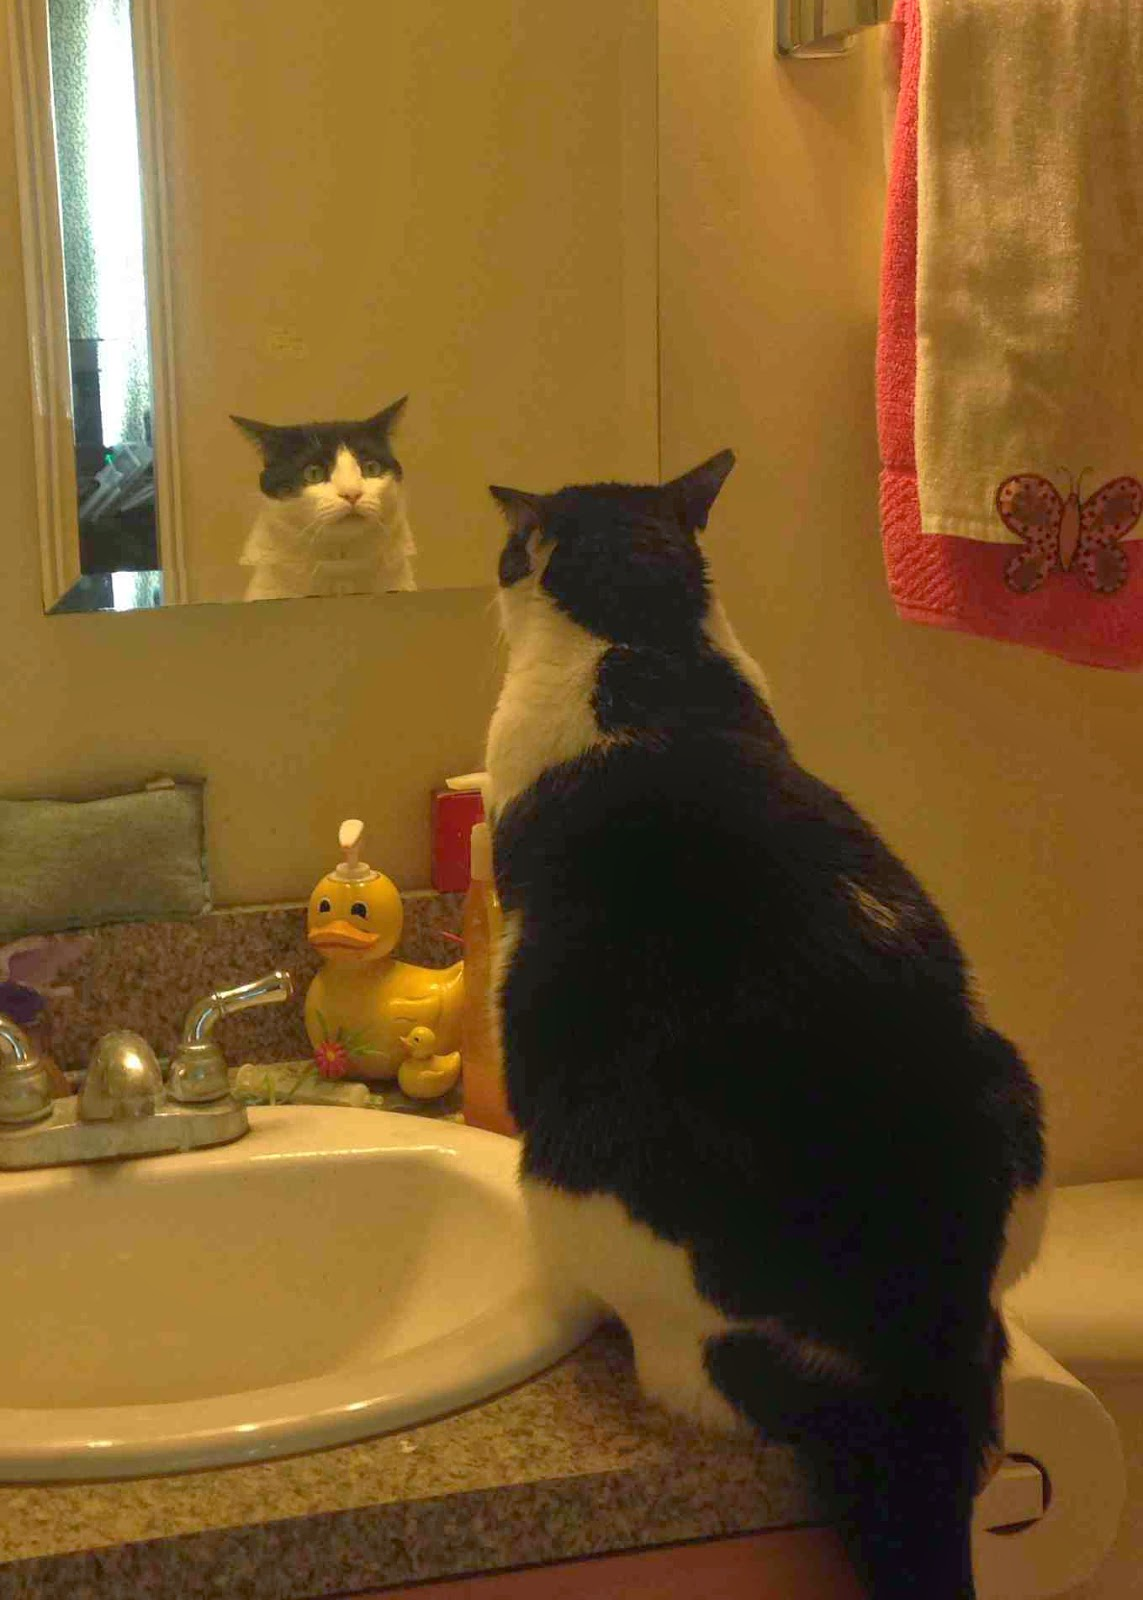 Funny cats - part 99 (40 pics + 10 gifs), cat pictures, cat looking into mirror